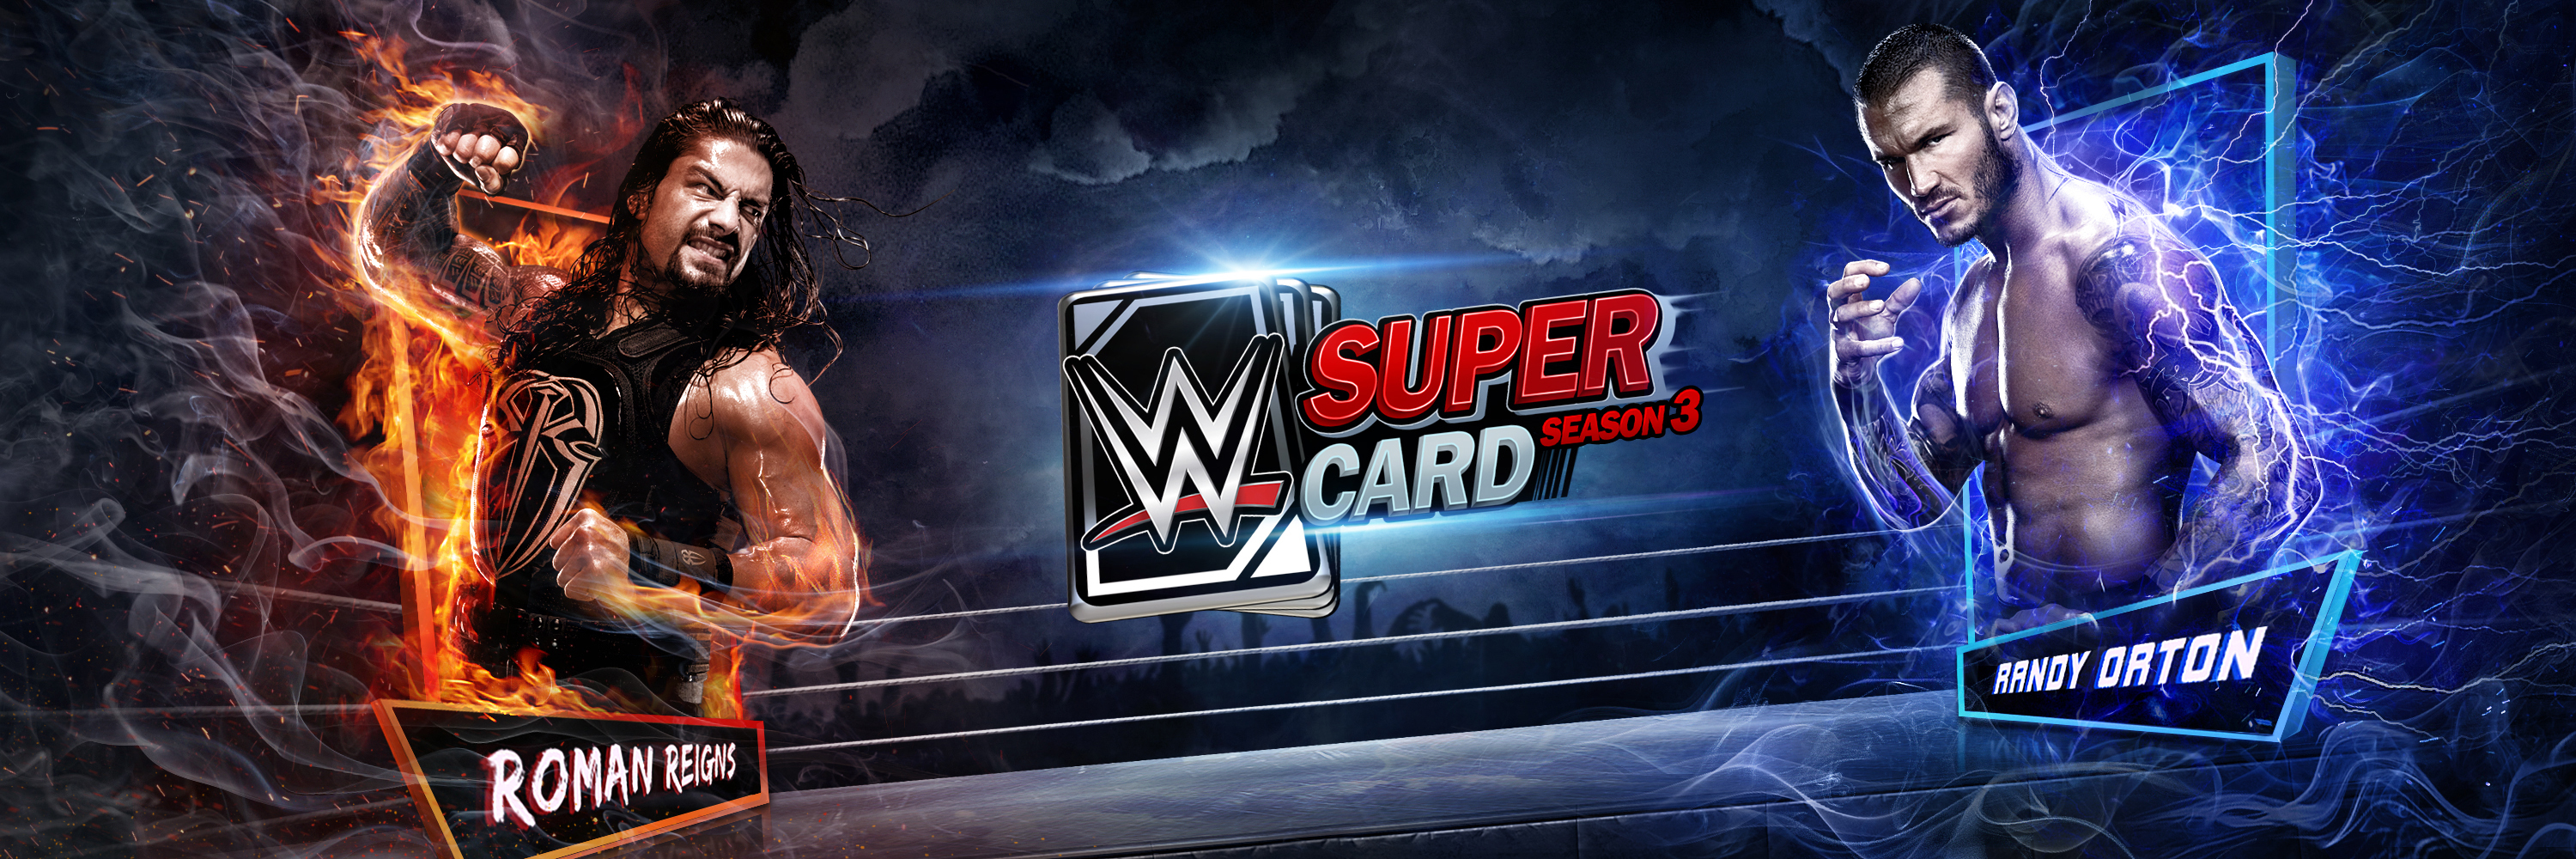 WWE® SuperCard – Season 3 Now Available for iOS and Android Devices